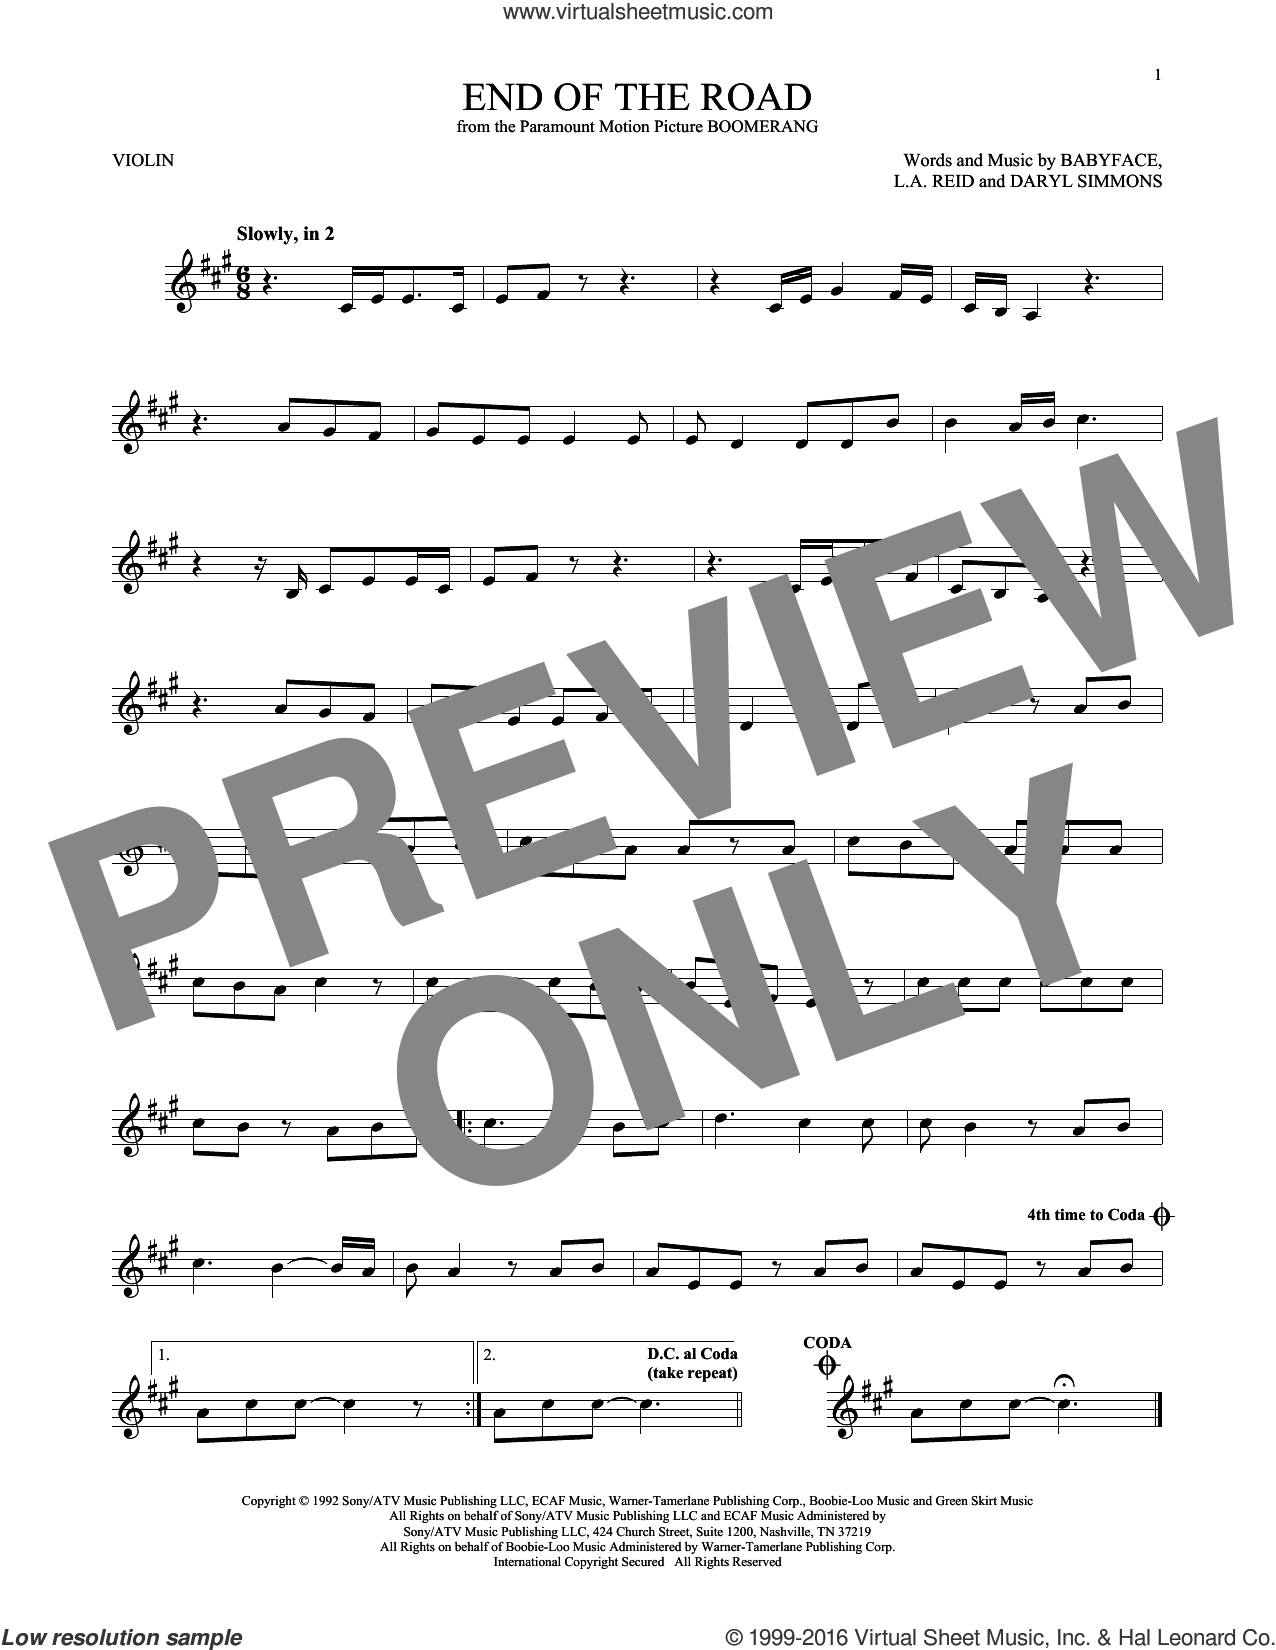 End Of The Road sheet music for violin solo by Boyz II Men, Babyface, DARYL SIMMONS and L.A. Reid, intermediate skill level